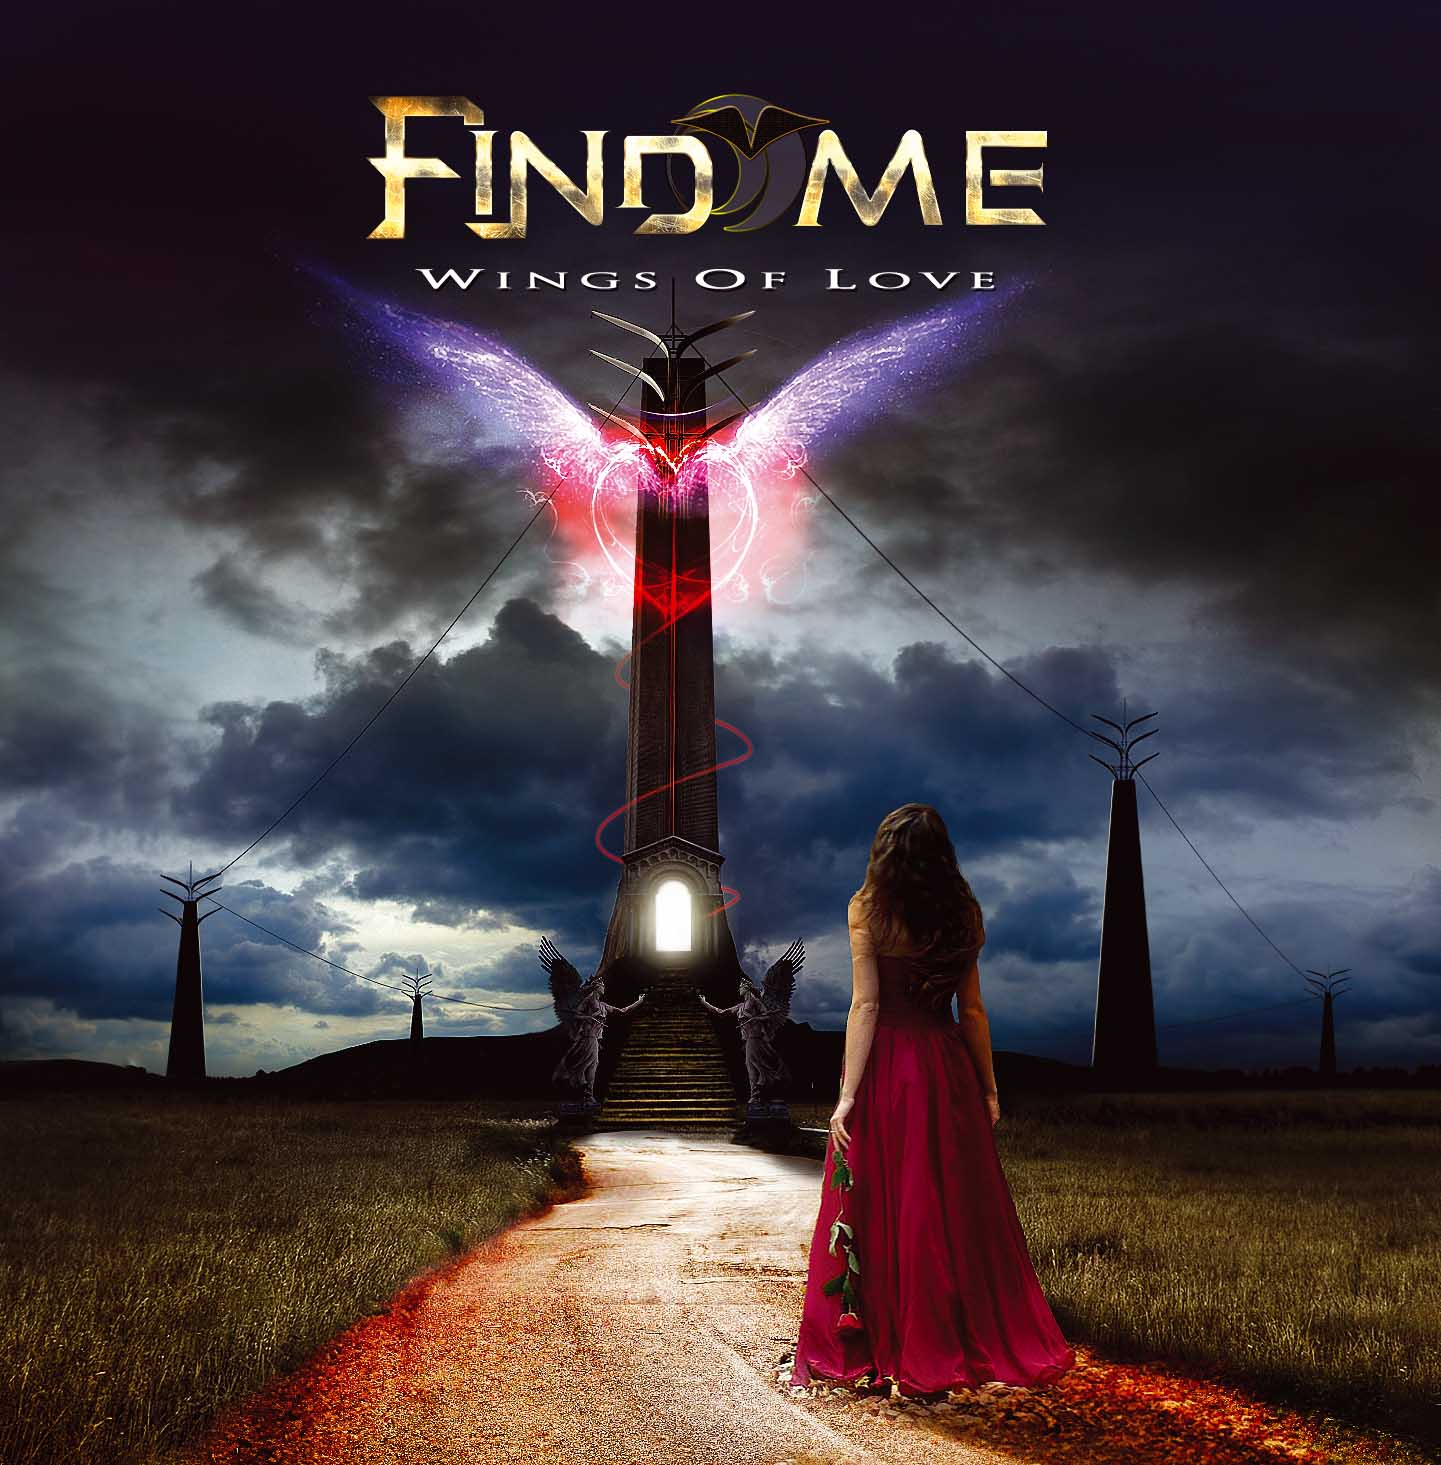 find me wings of love review Find me - wings of love - amazoncom music stream wings of love by find me and tens of millions of other songs on all most recent customer reviews.